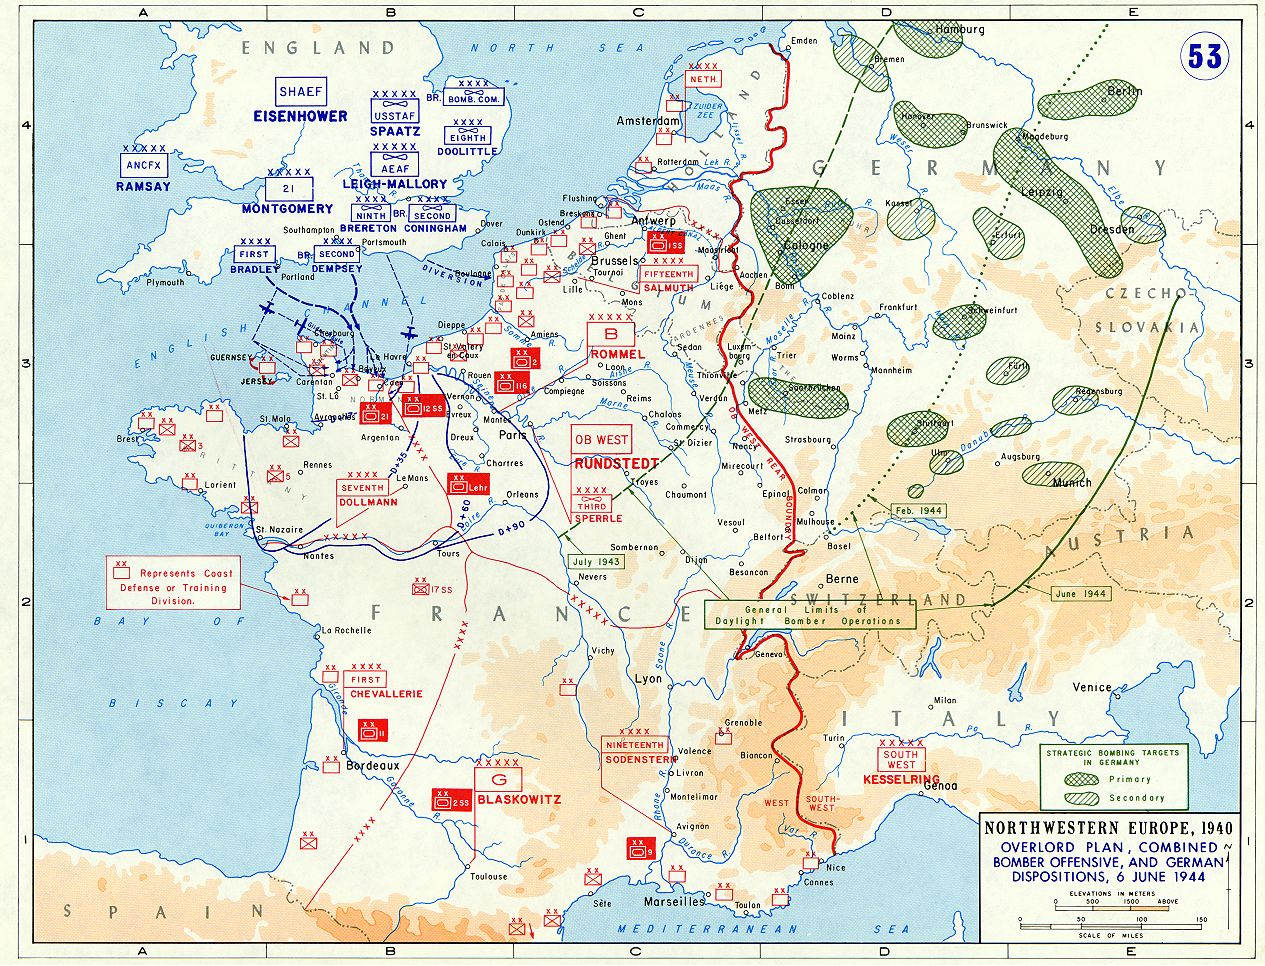 Overlord Plan, Combined Bomber Offensive And German